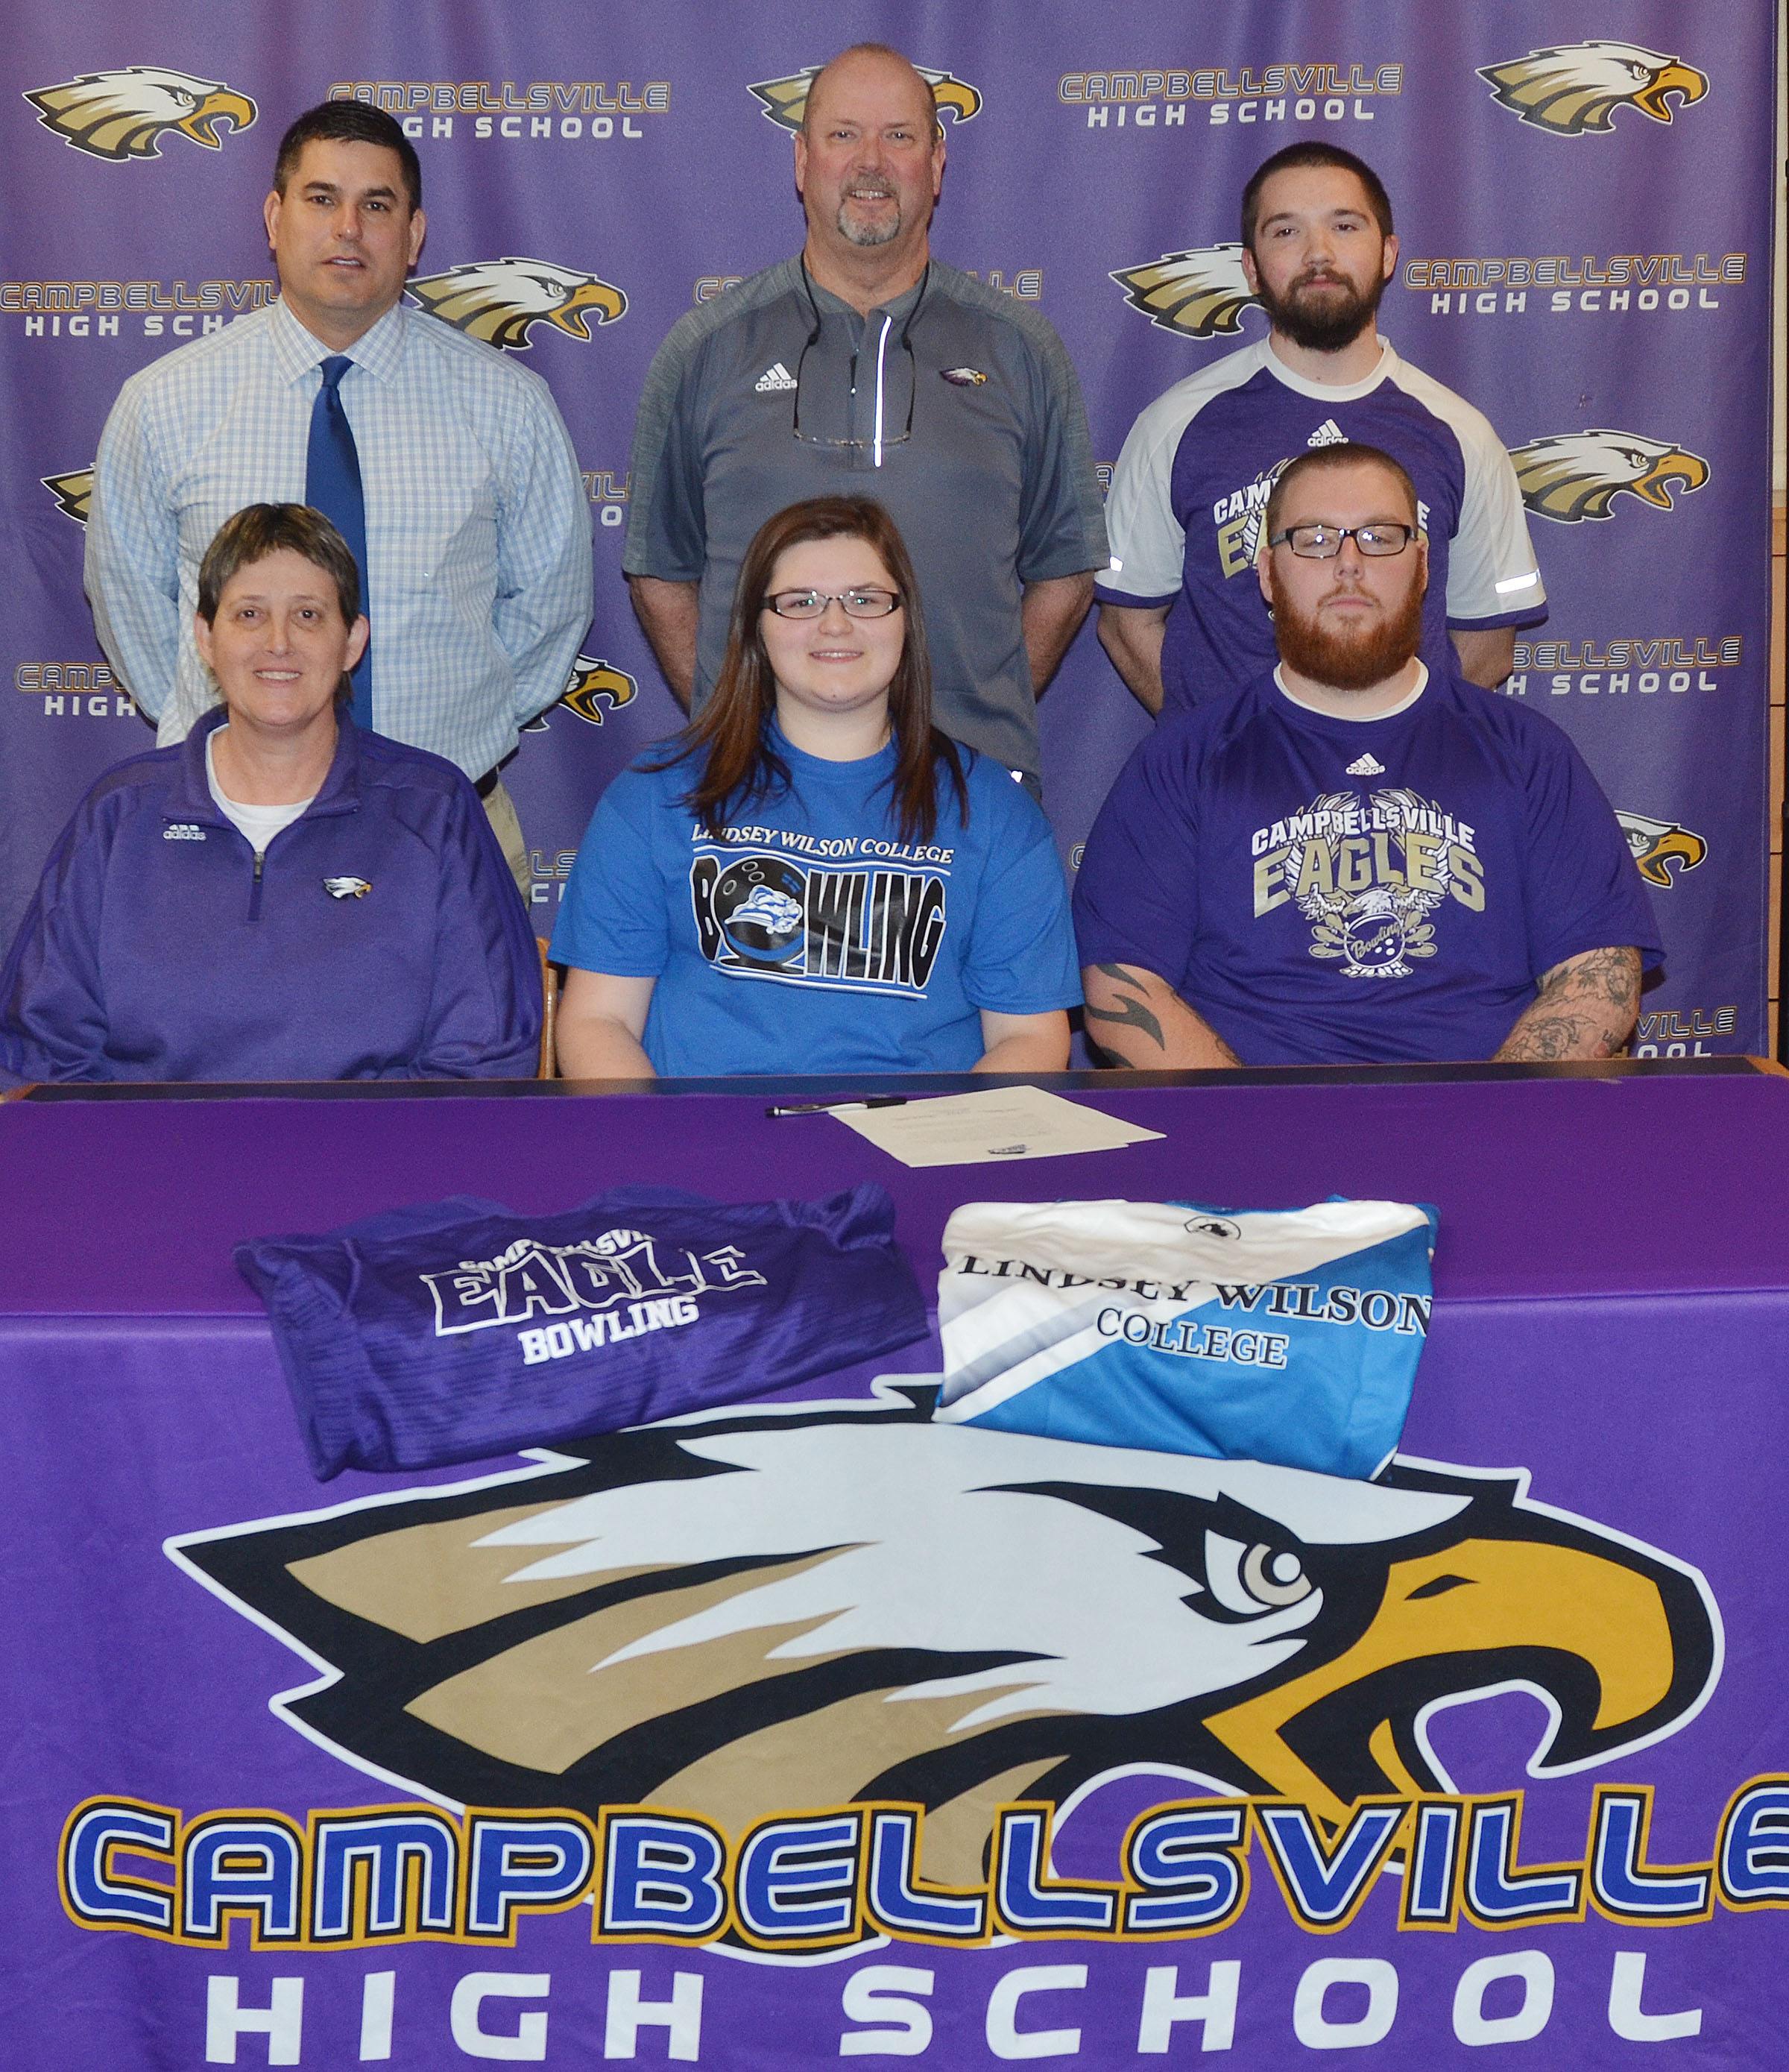 Campbellsville High School senior Vera Brown will continue her academic and bowling career at Lindsey Wilson College in the fall. She officially signed her letter of intent in a special ceremony on Wednesday, Feb. 1. From left, front, are CHS Assistant Athletic Director Katie Wilkerson, Vera, and CHS head bowling coach Stephen Tucker. Back, CHS Principal Kirby Smith, CHS Athletic Director Tim Davis and CHS assistant bowling coach Dakota Pendleton.